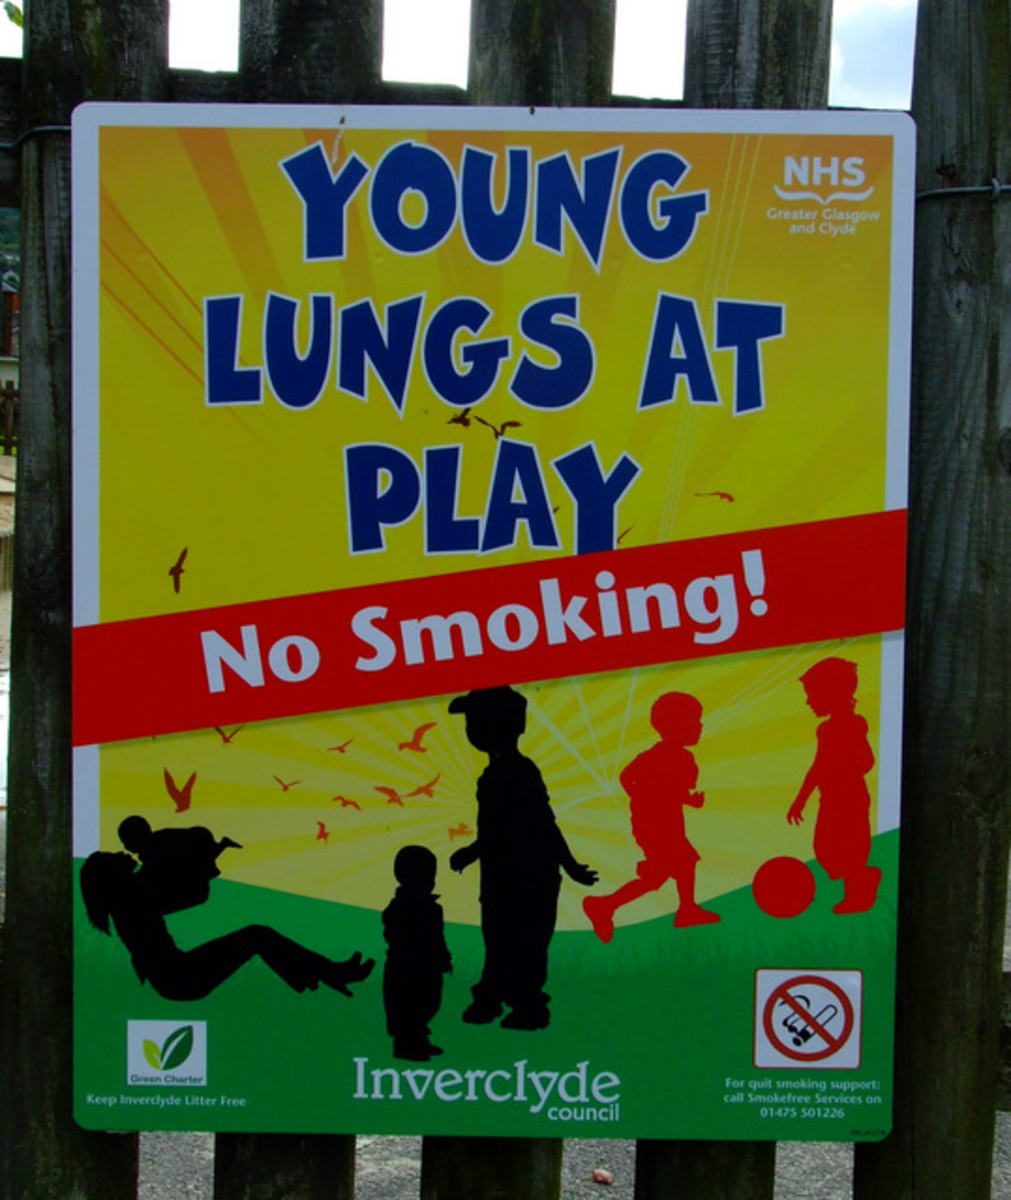 Inverclyde Council was the first in the UK to designate some play parks as no smoking areas.